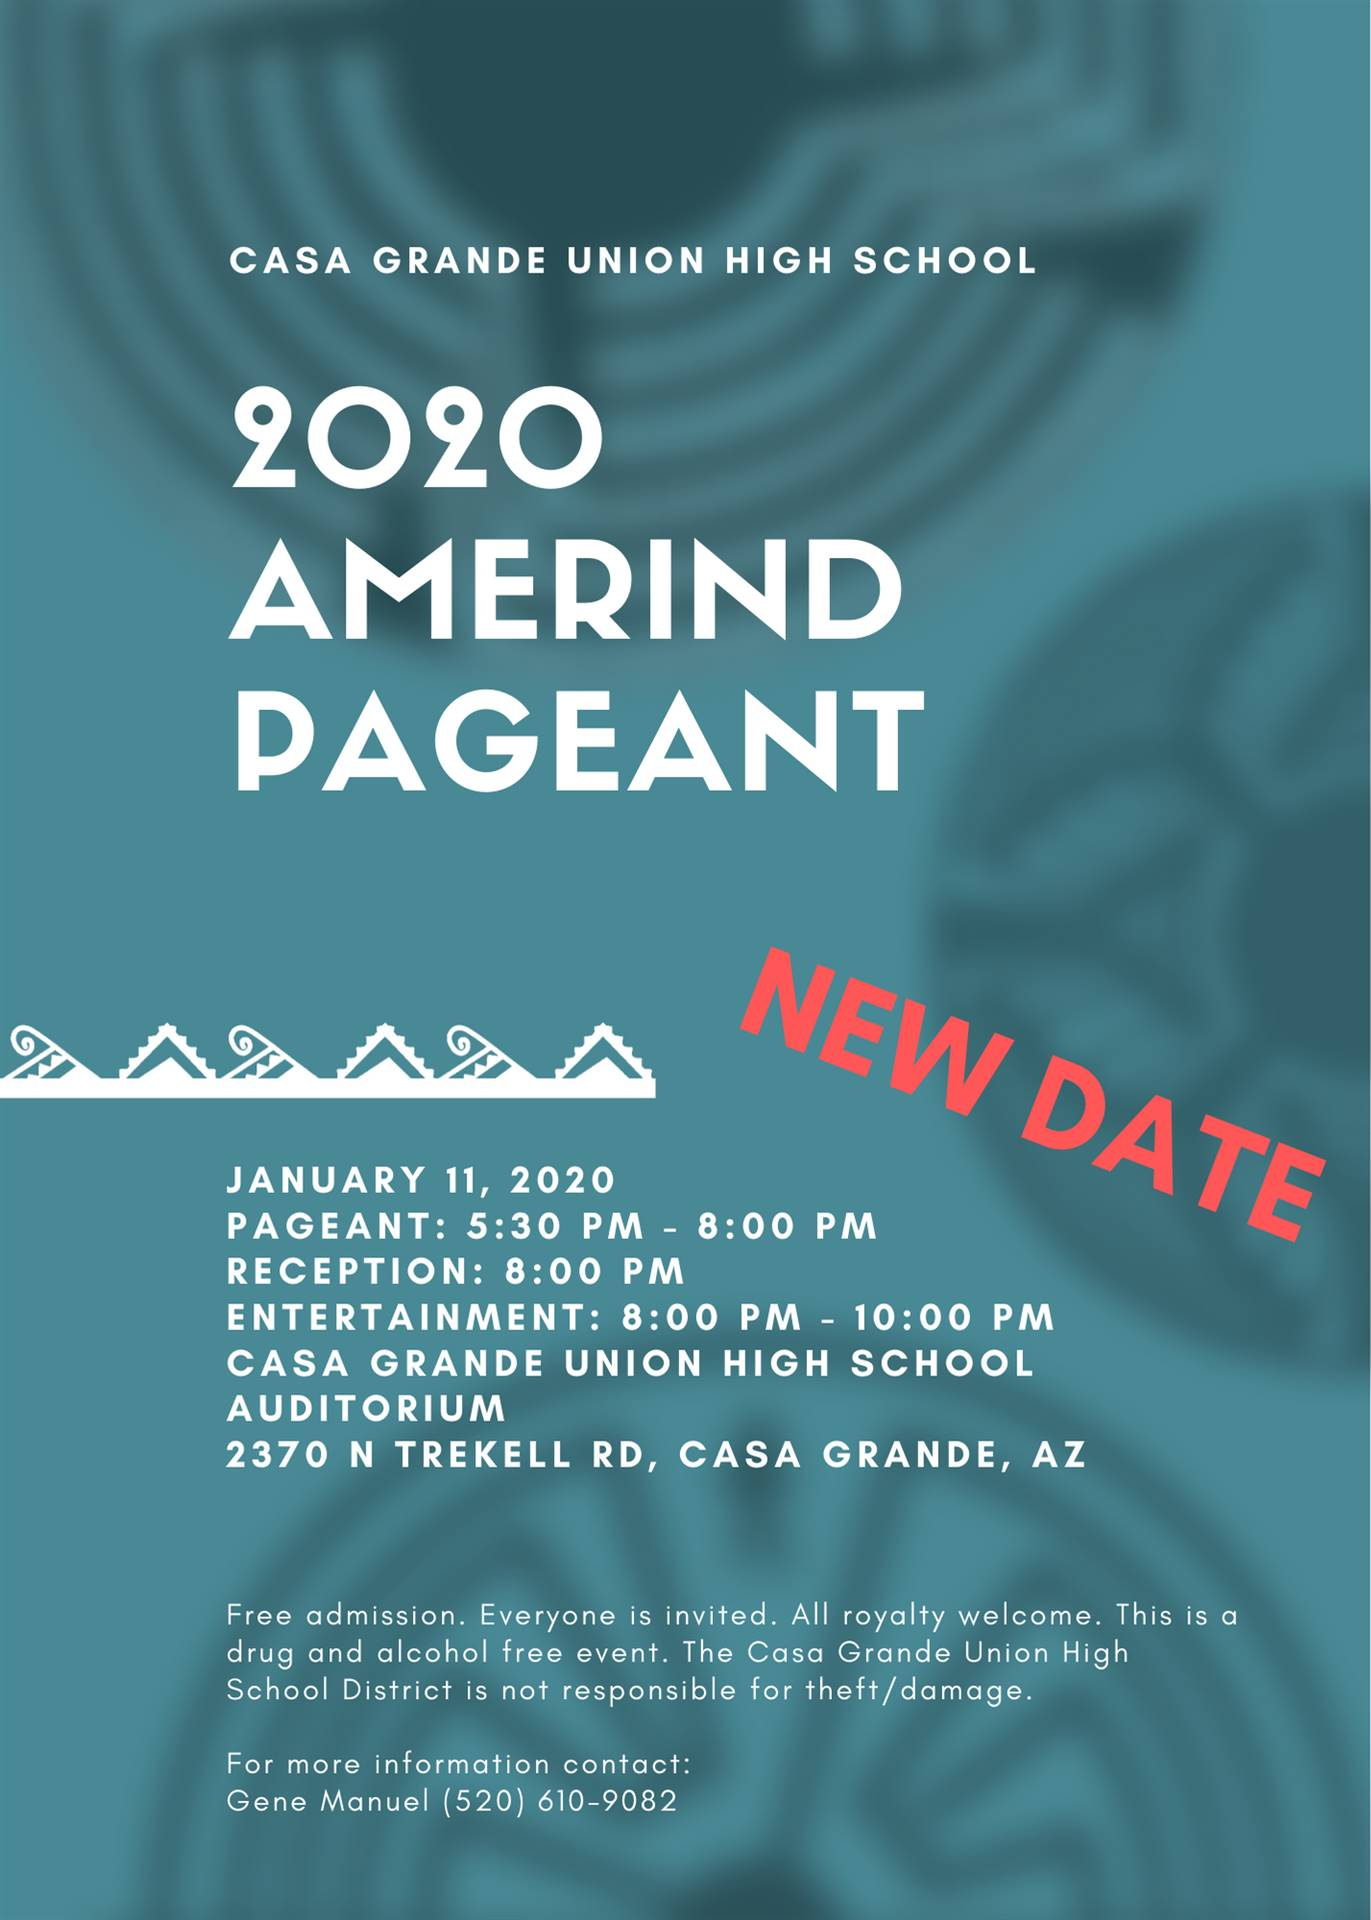 AmerInd Pageant 20200111